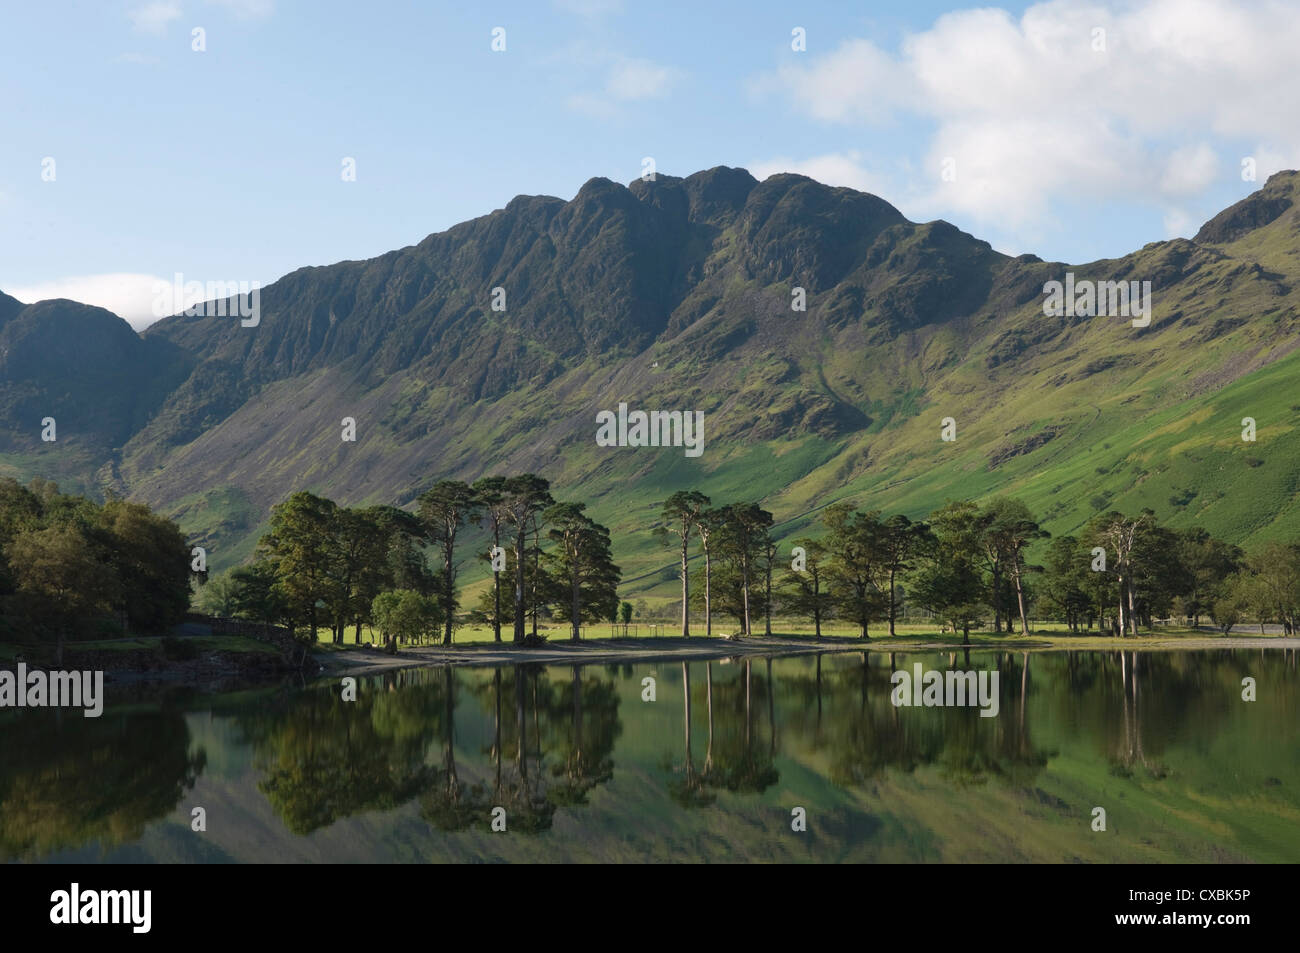 The Lake Buttermere pines with Haystacks, Lake District National Park, Cumbria, England, United Kingdom, Europe - Stock Image